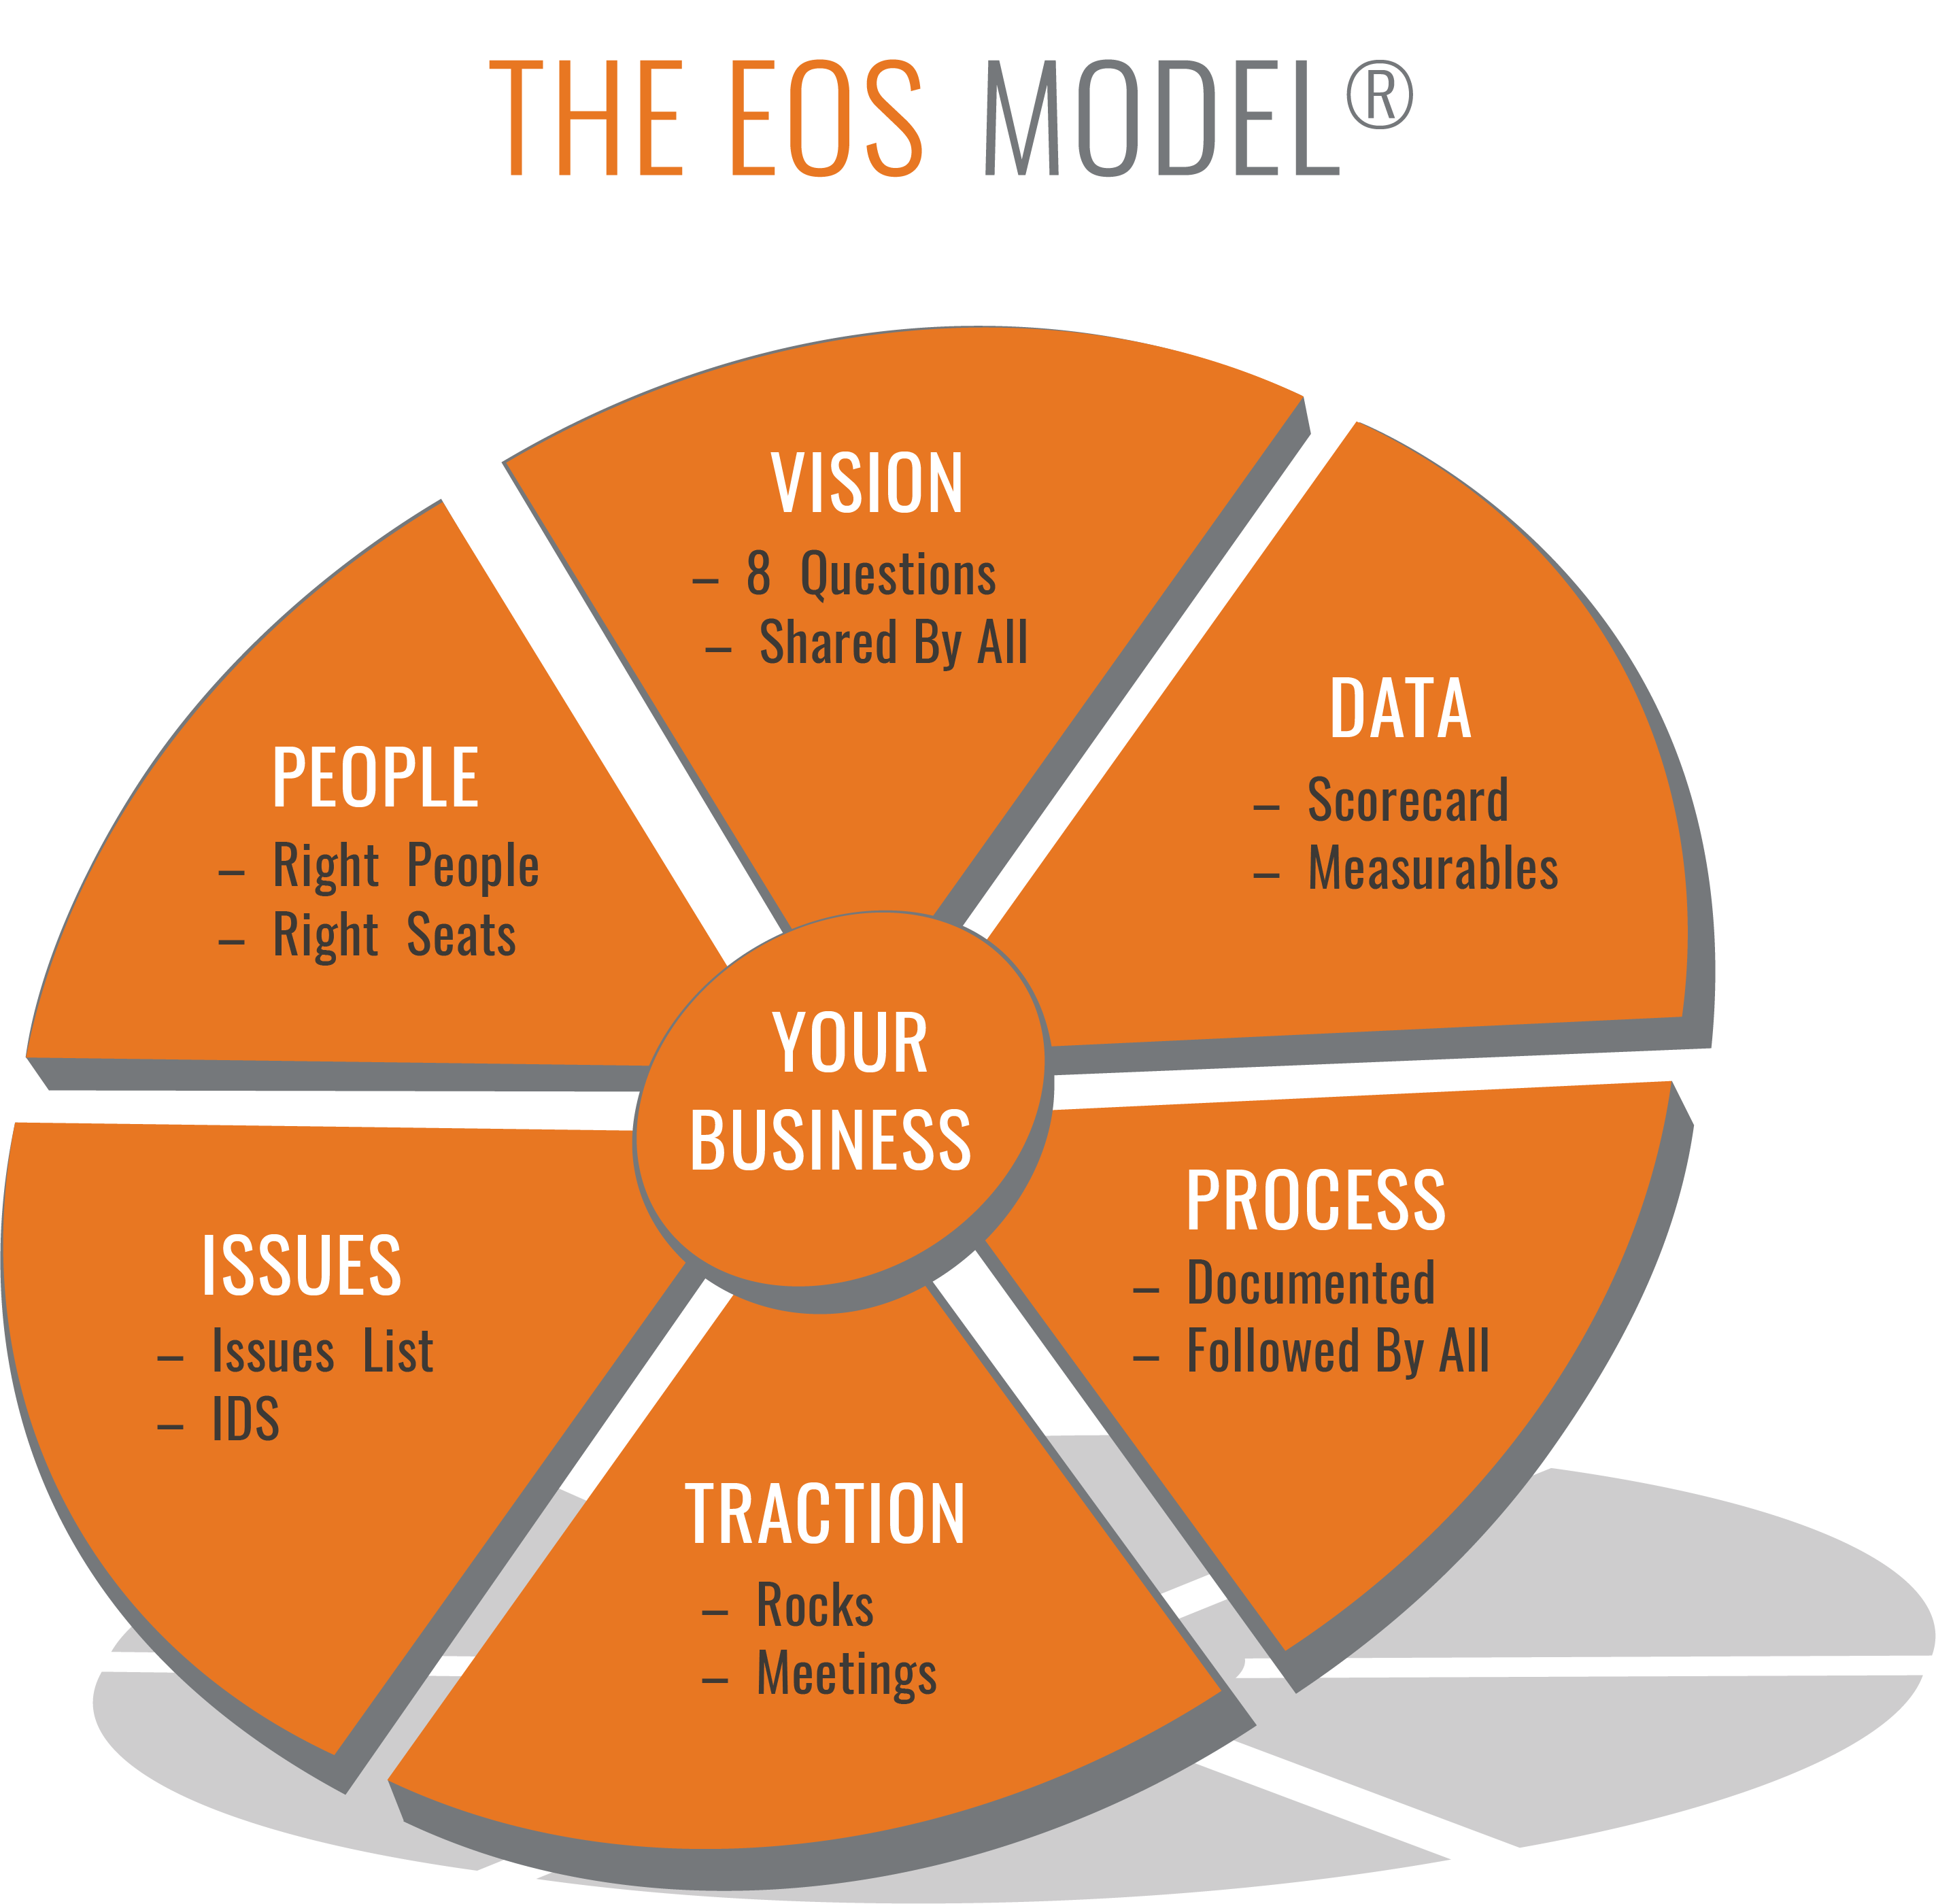 [OFFICIAL] EOS Model - With Title 2018.png